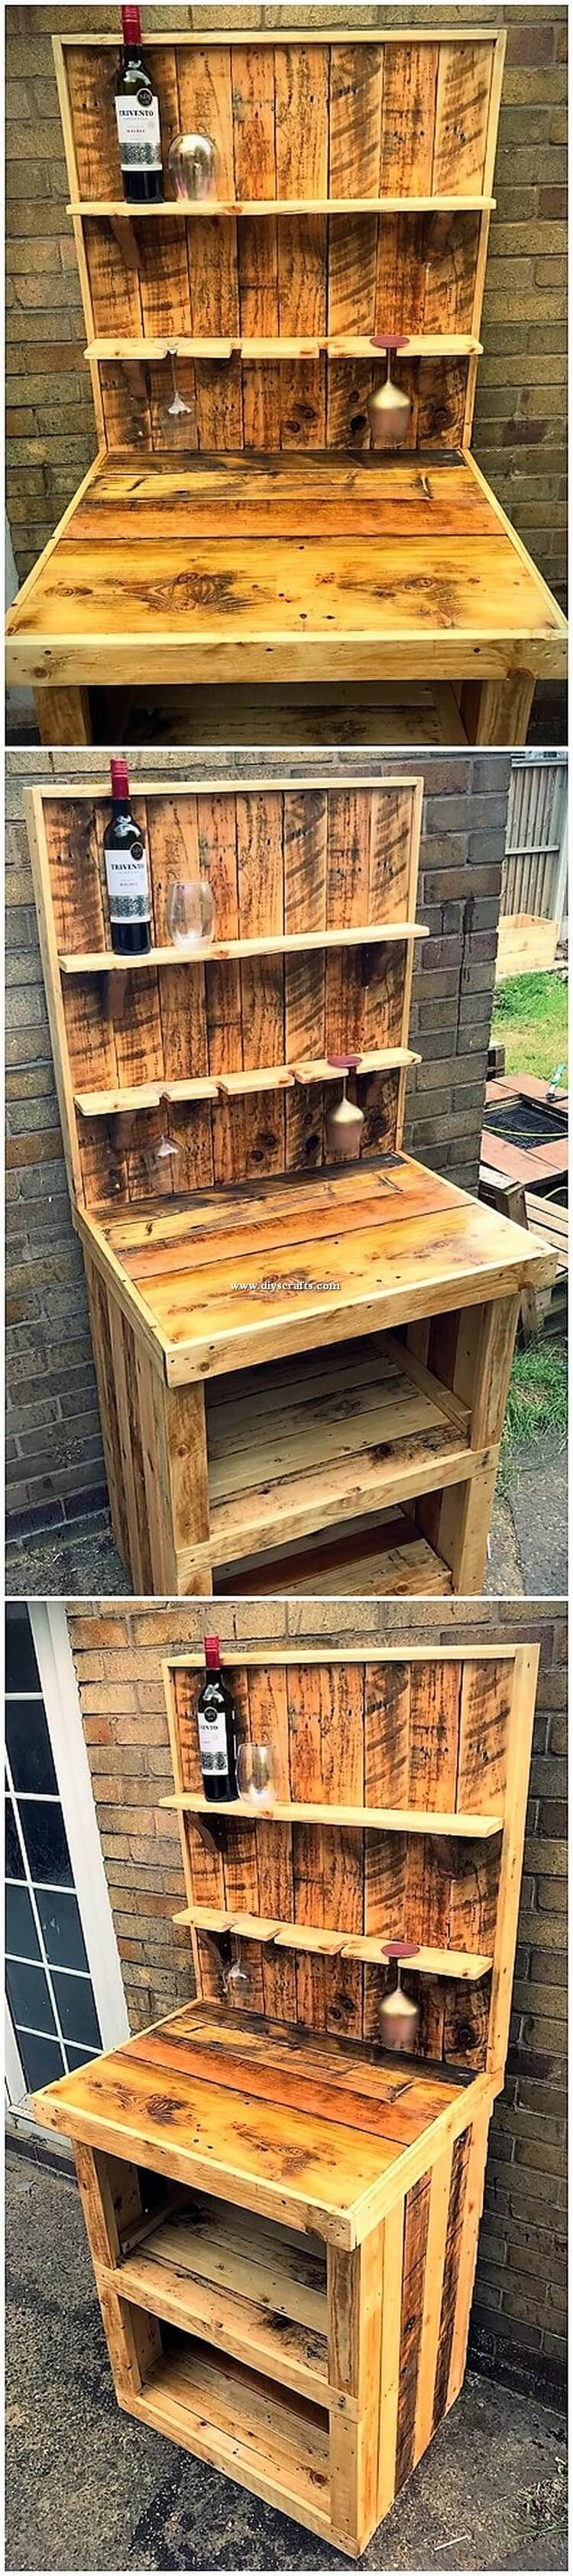 Pallet Wine Rack with Desk Table